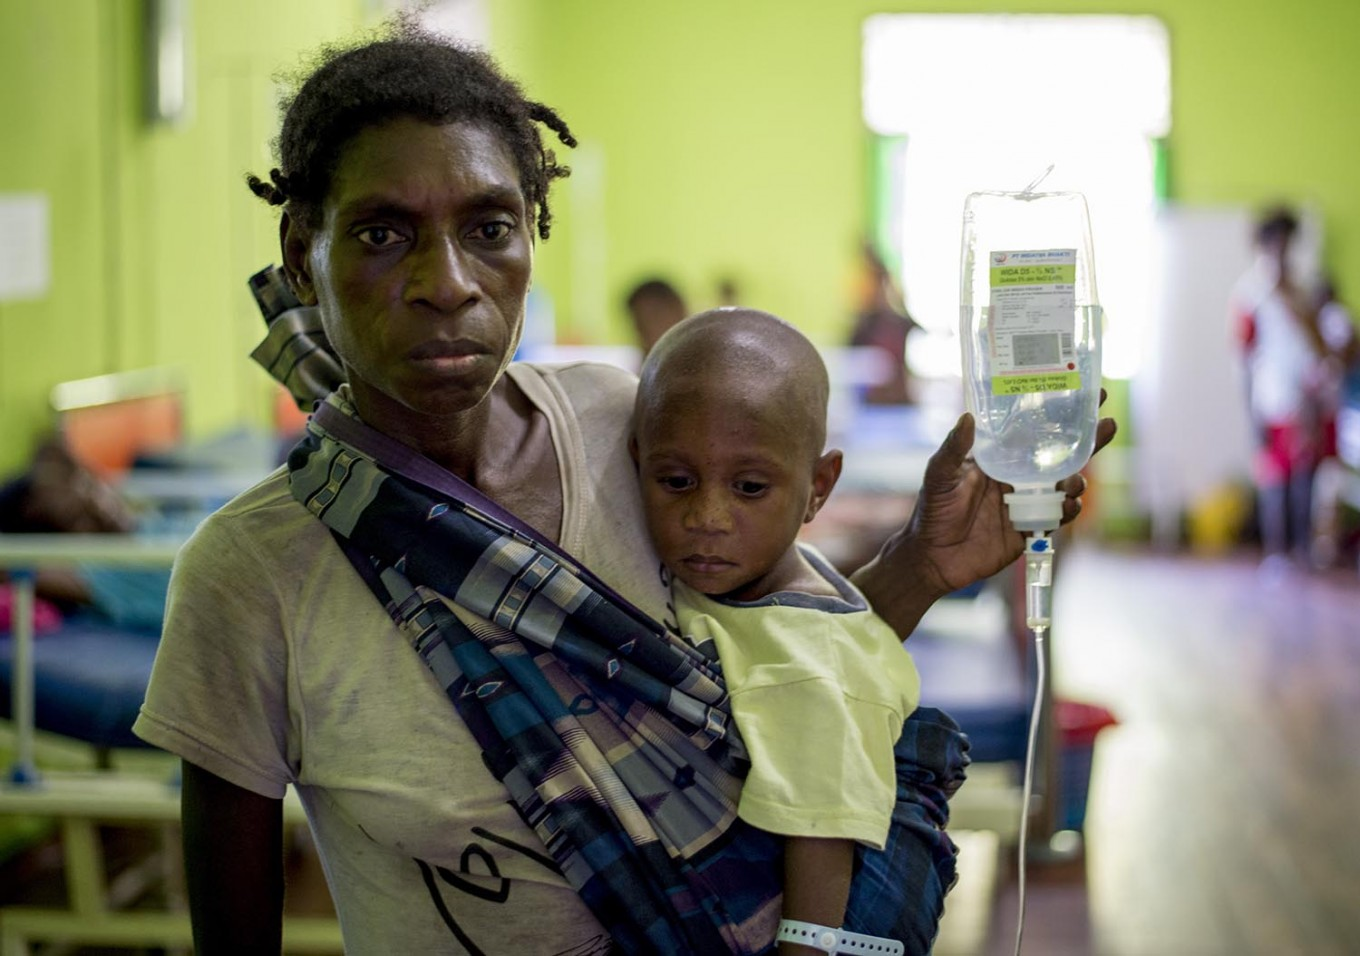 A Papuan woman carrying a drip looks on with her child at a local hospital handling measles and malnutrition patients in Agats, the capital of Asmat district in Indonesia's easternmost Papua province, on January 25, 2018. Some 800 children have been sickened by a measles-and-malnutrition outbreak in Indonesia's remote Papua province, officials said January 25, with as many as 100 people, mostly toddlers, feared to have been killed in the outbreak. AFP/ Bay Ismoyo